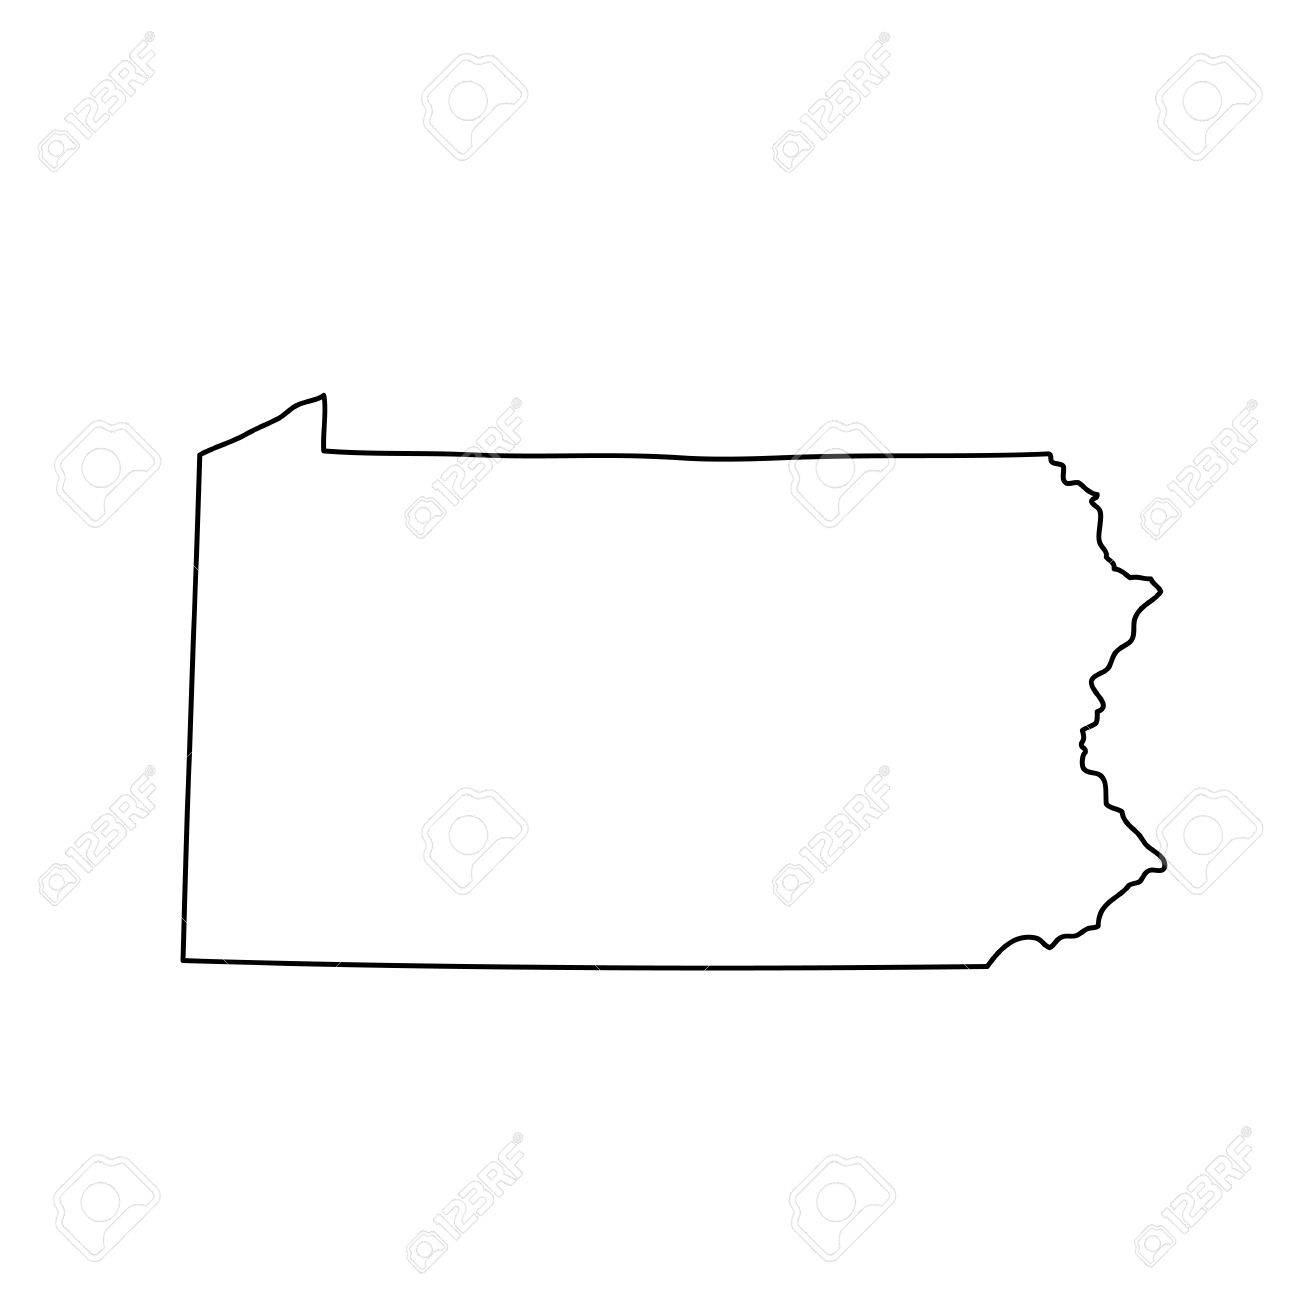 map of the U.S. state of Pennsylvania - 75477517